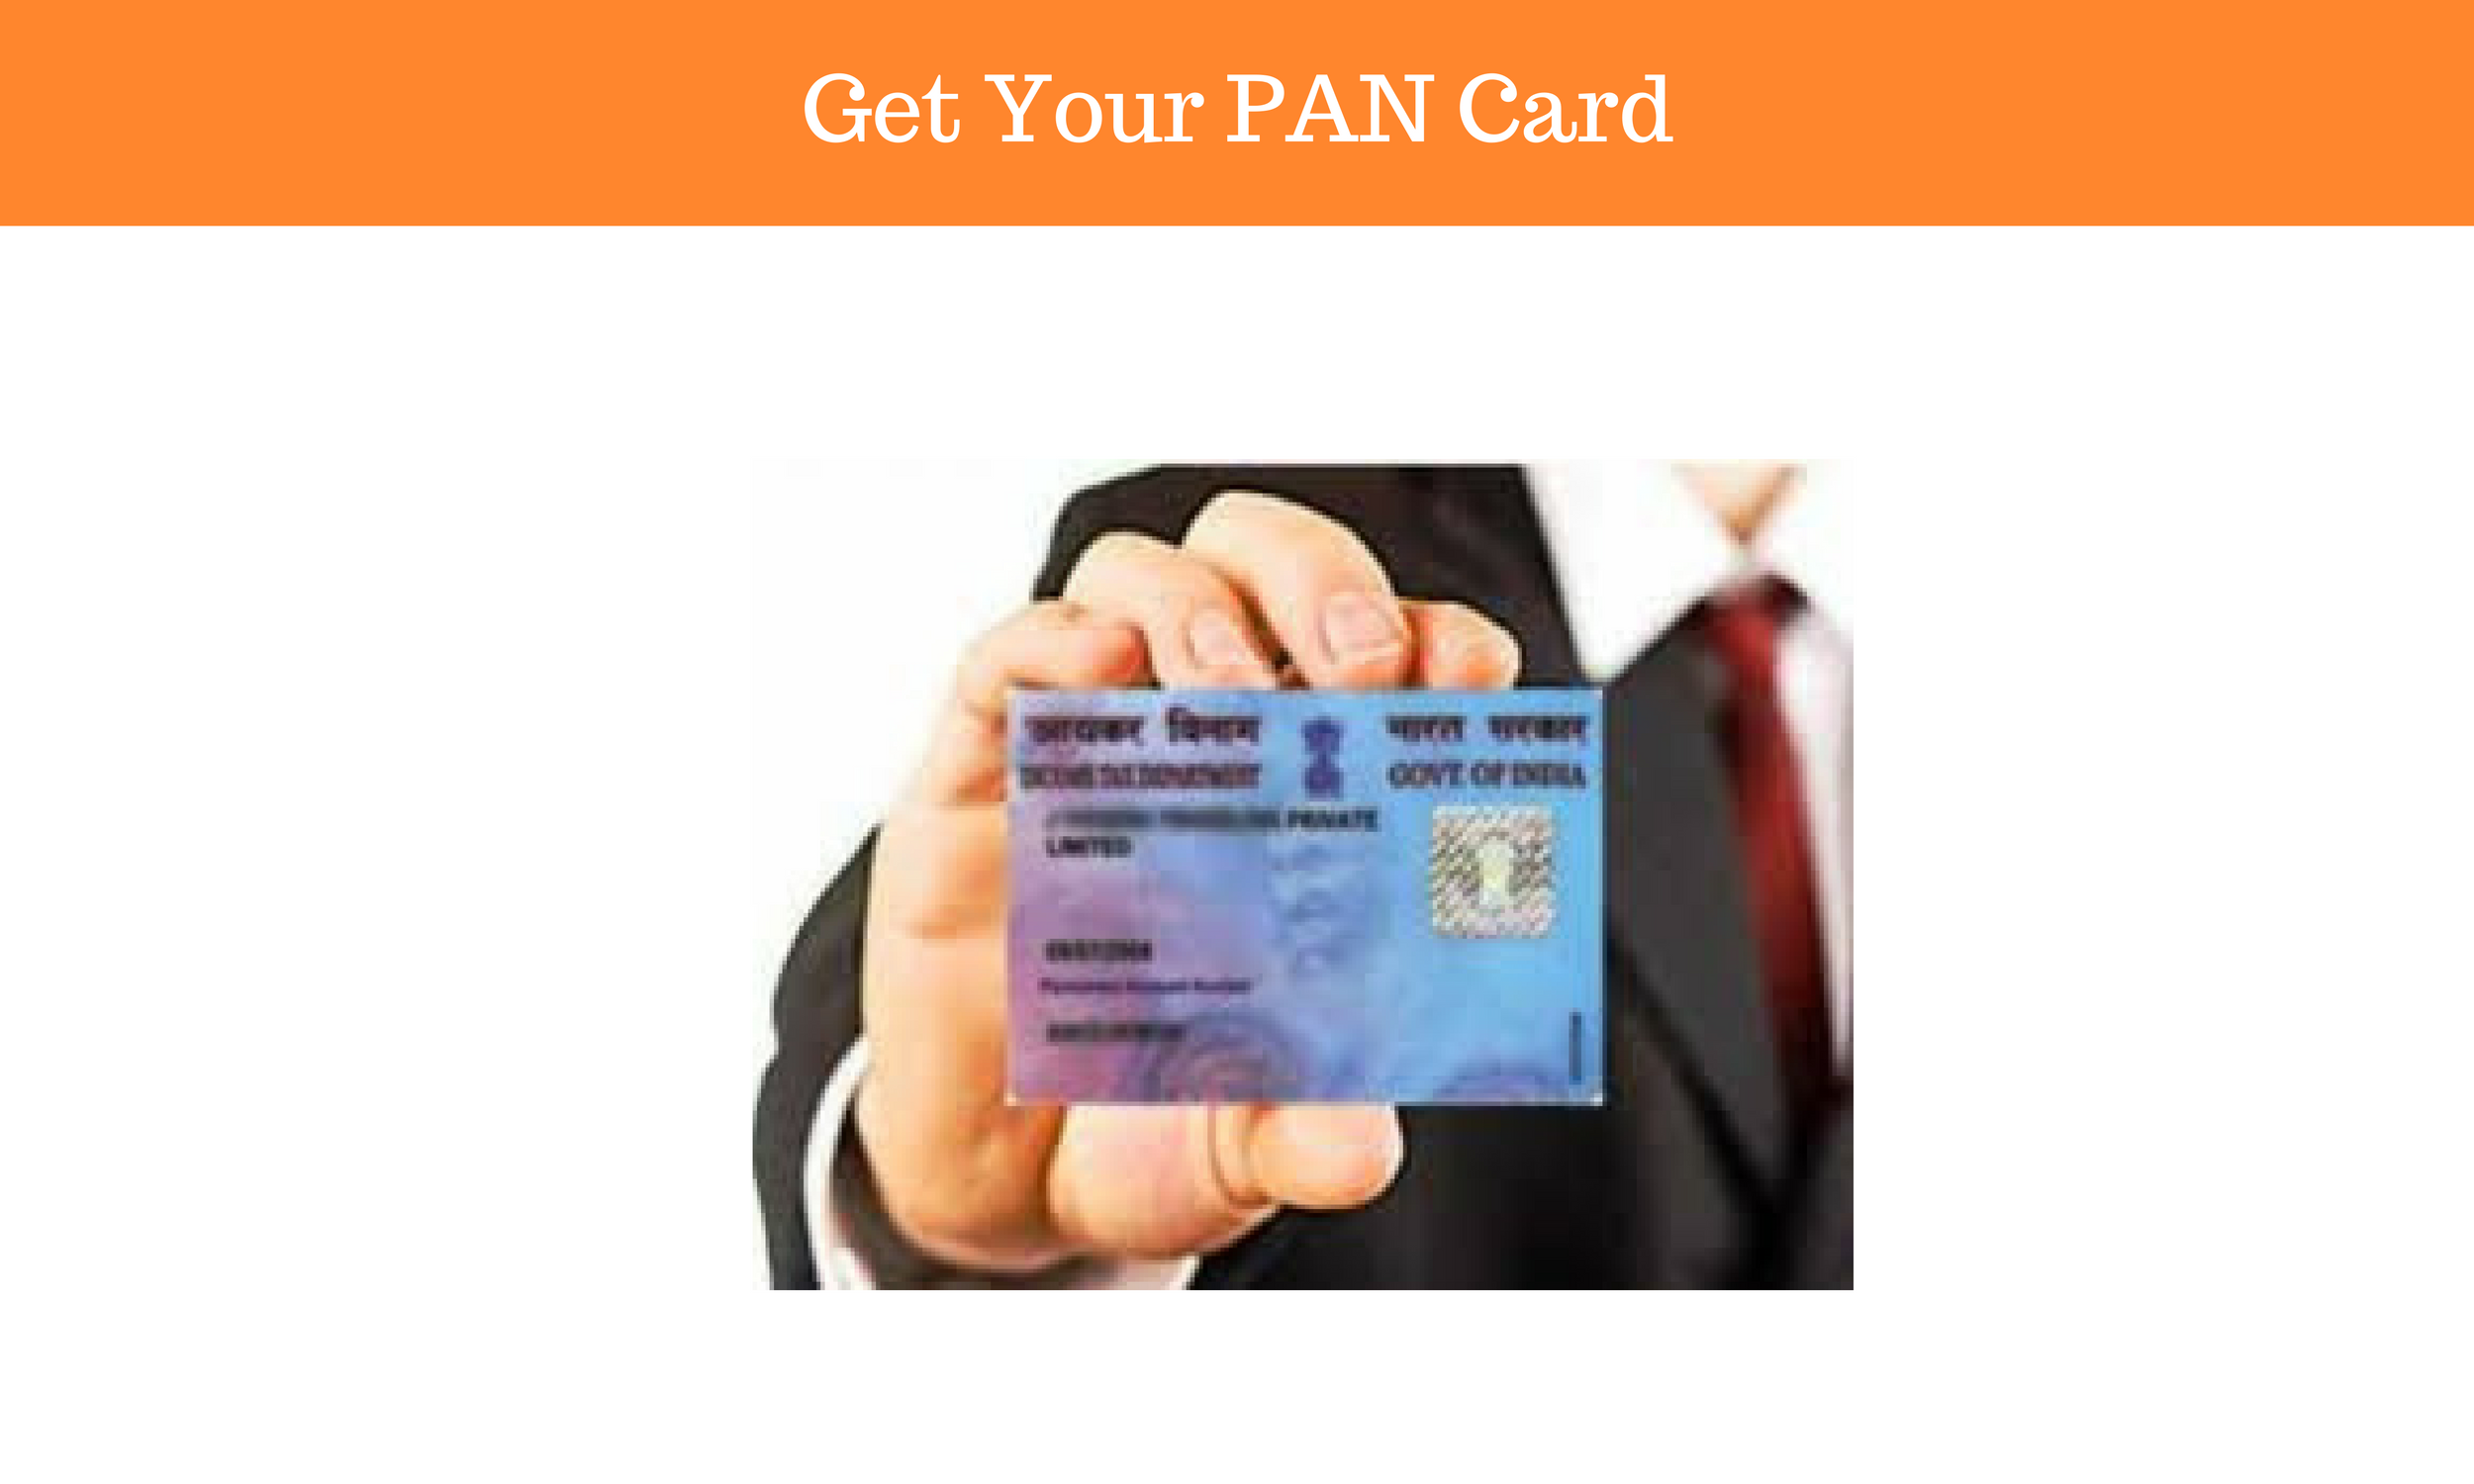 Get Your PAN Card